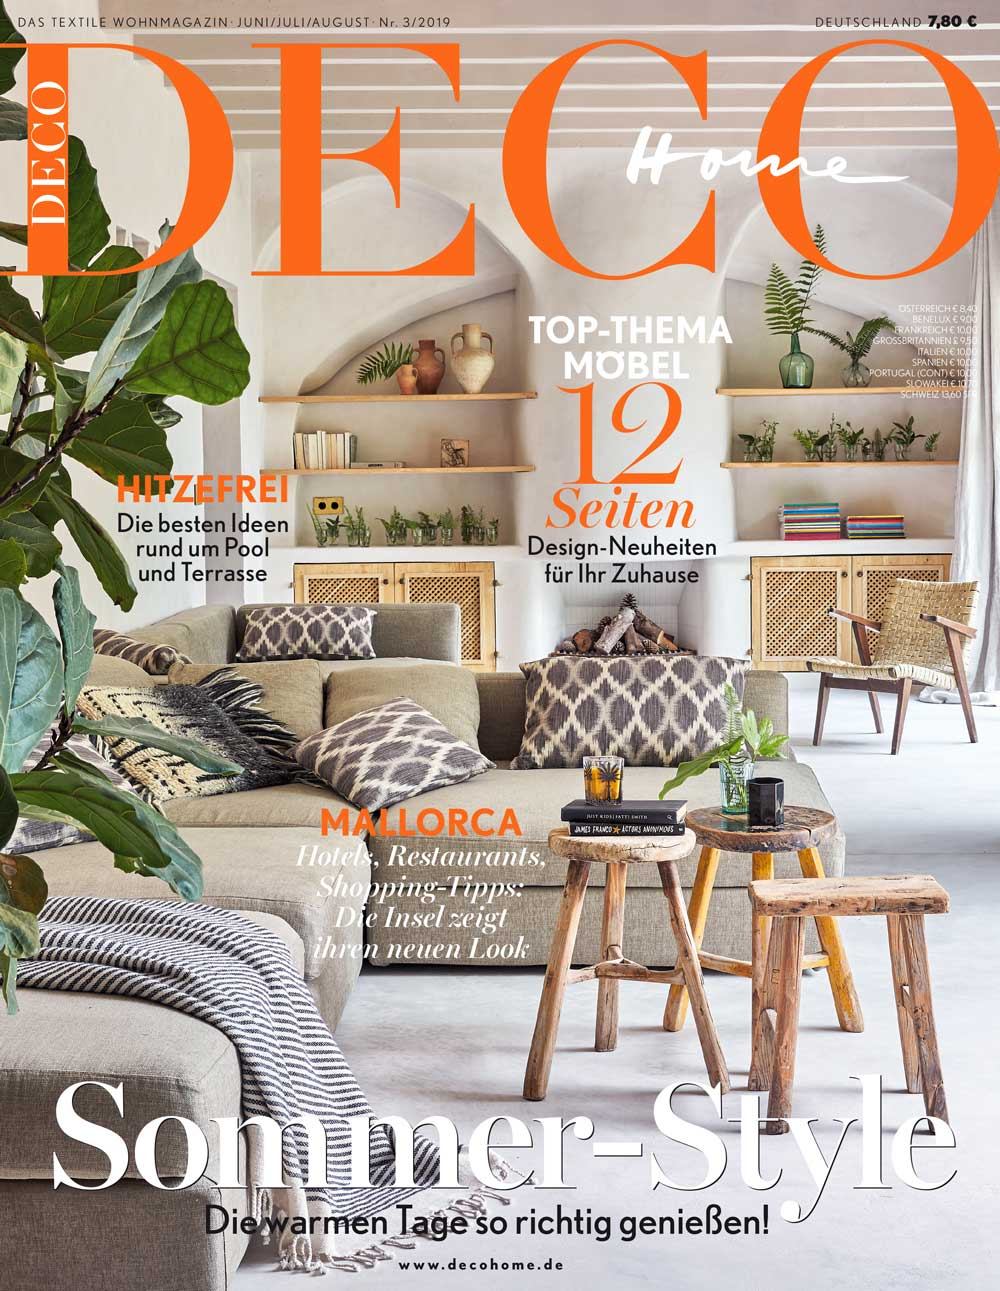 deco_0319_001_titel-decohome.de_